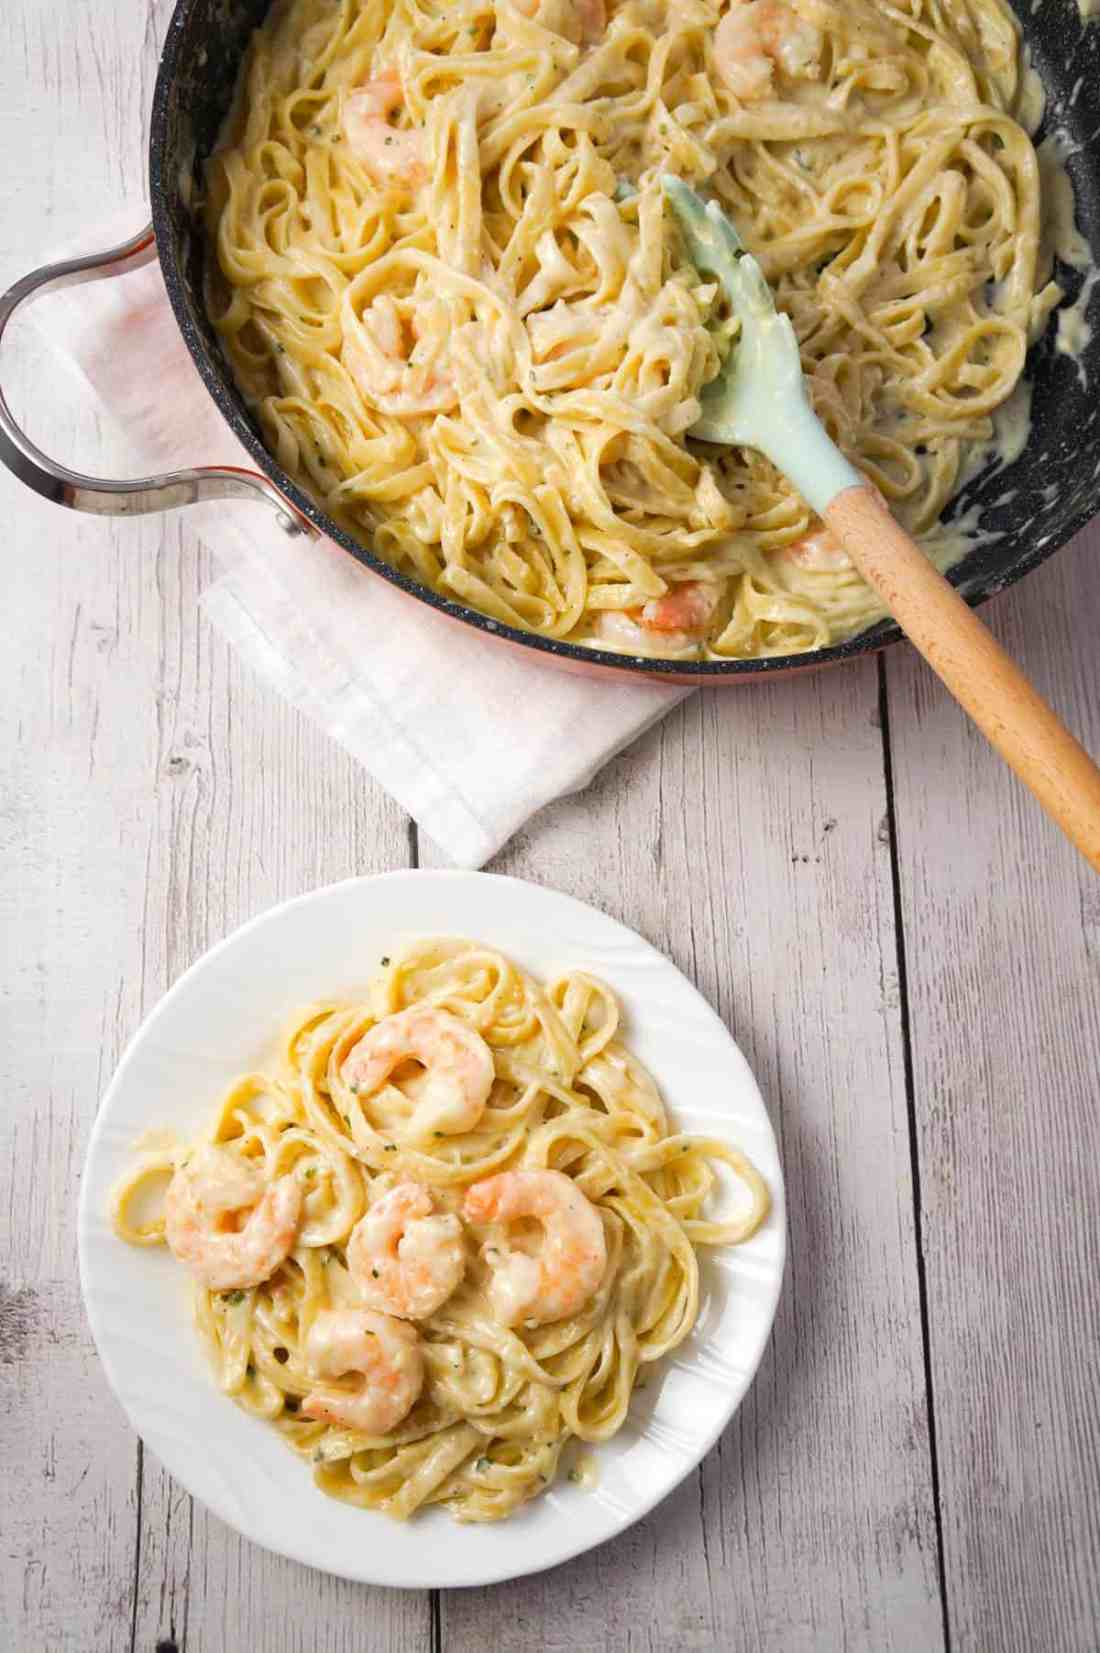 Fettuccine Alfredo with Shrimp is a delicious seafood pasta recipe with a creamy garlic parmesan sauce.